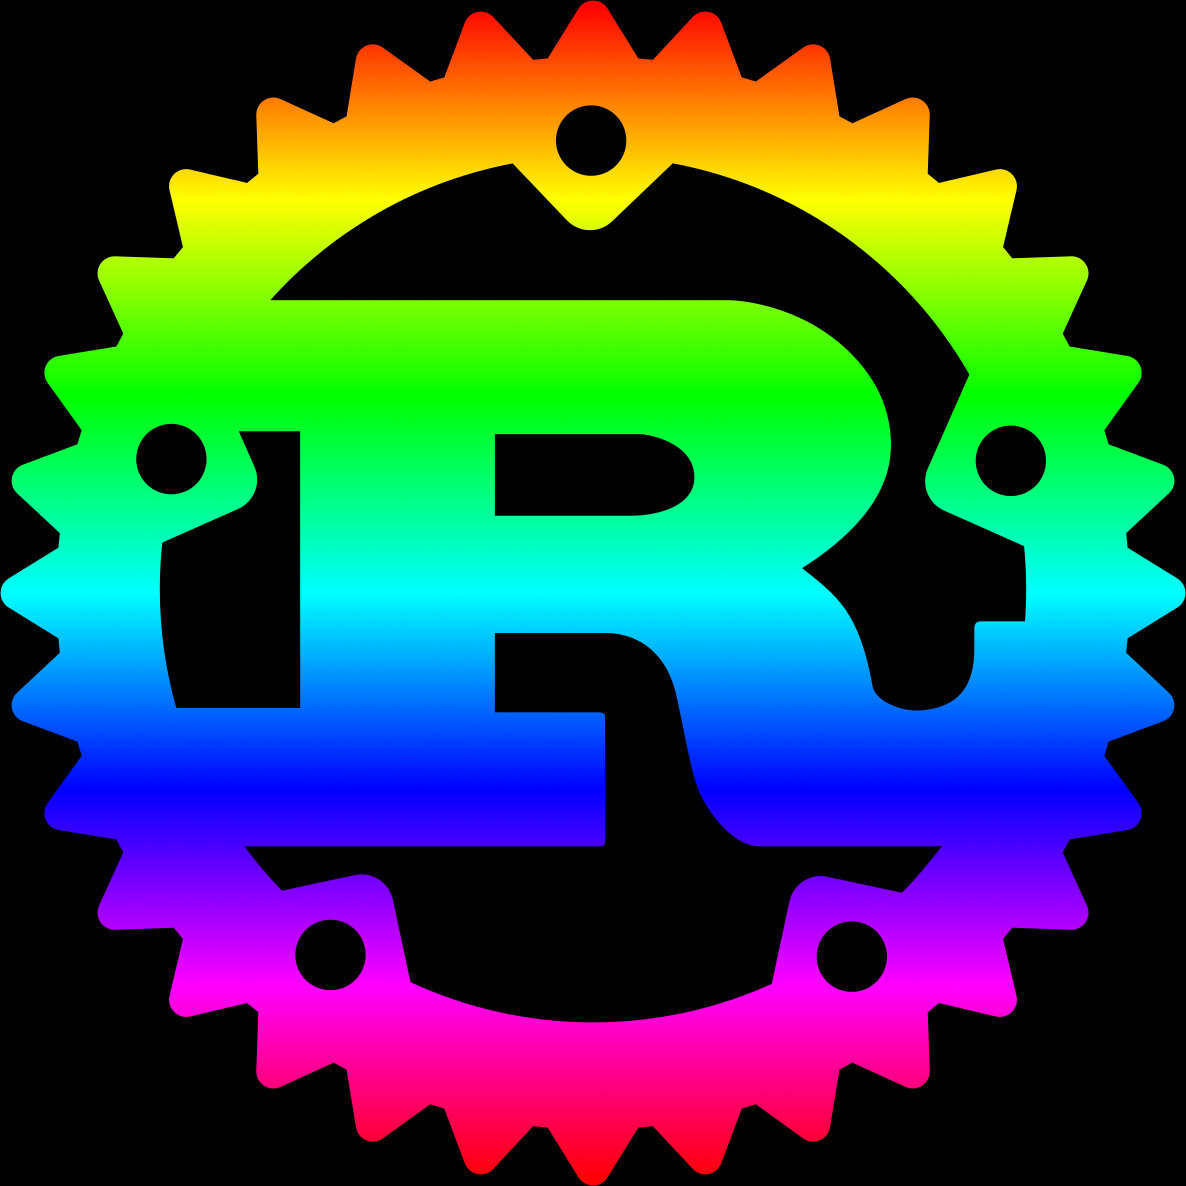 Rust logo with rainbow.